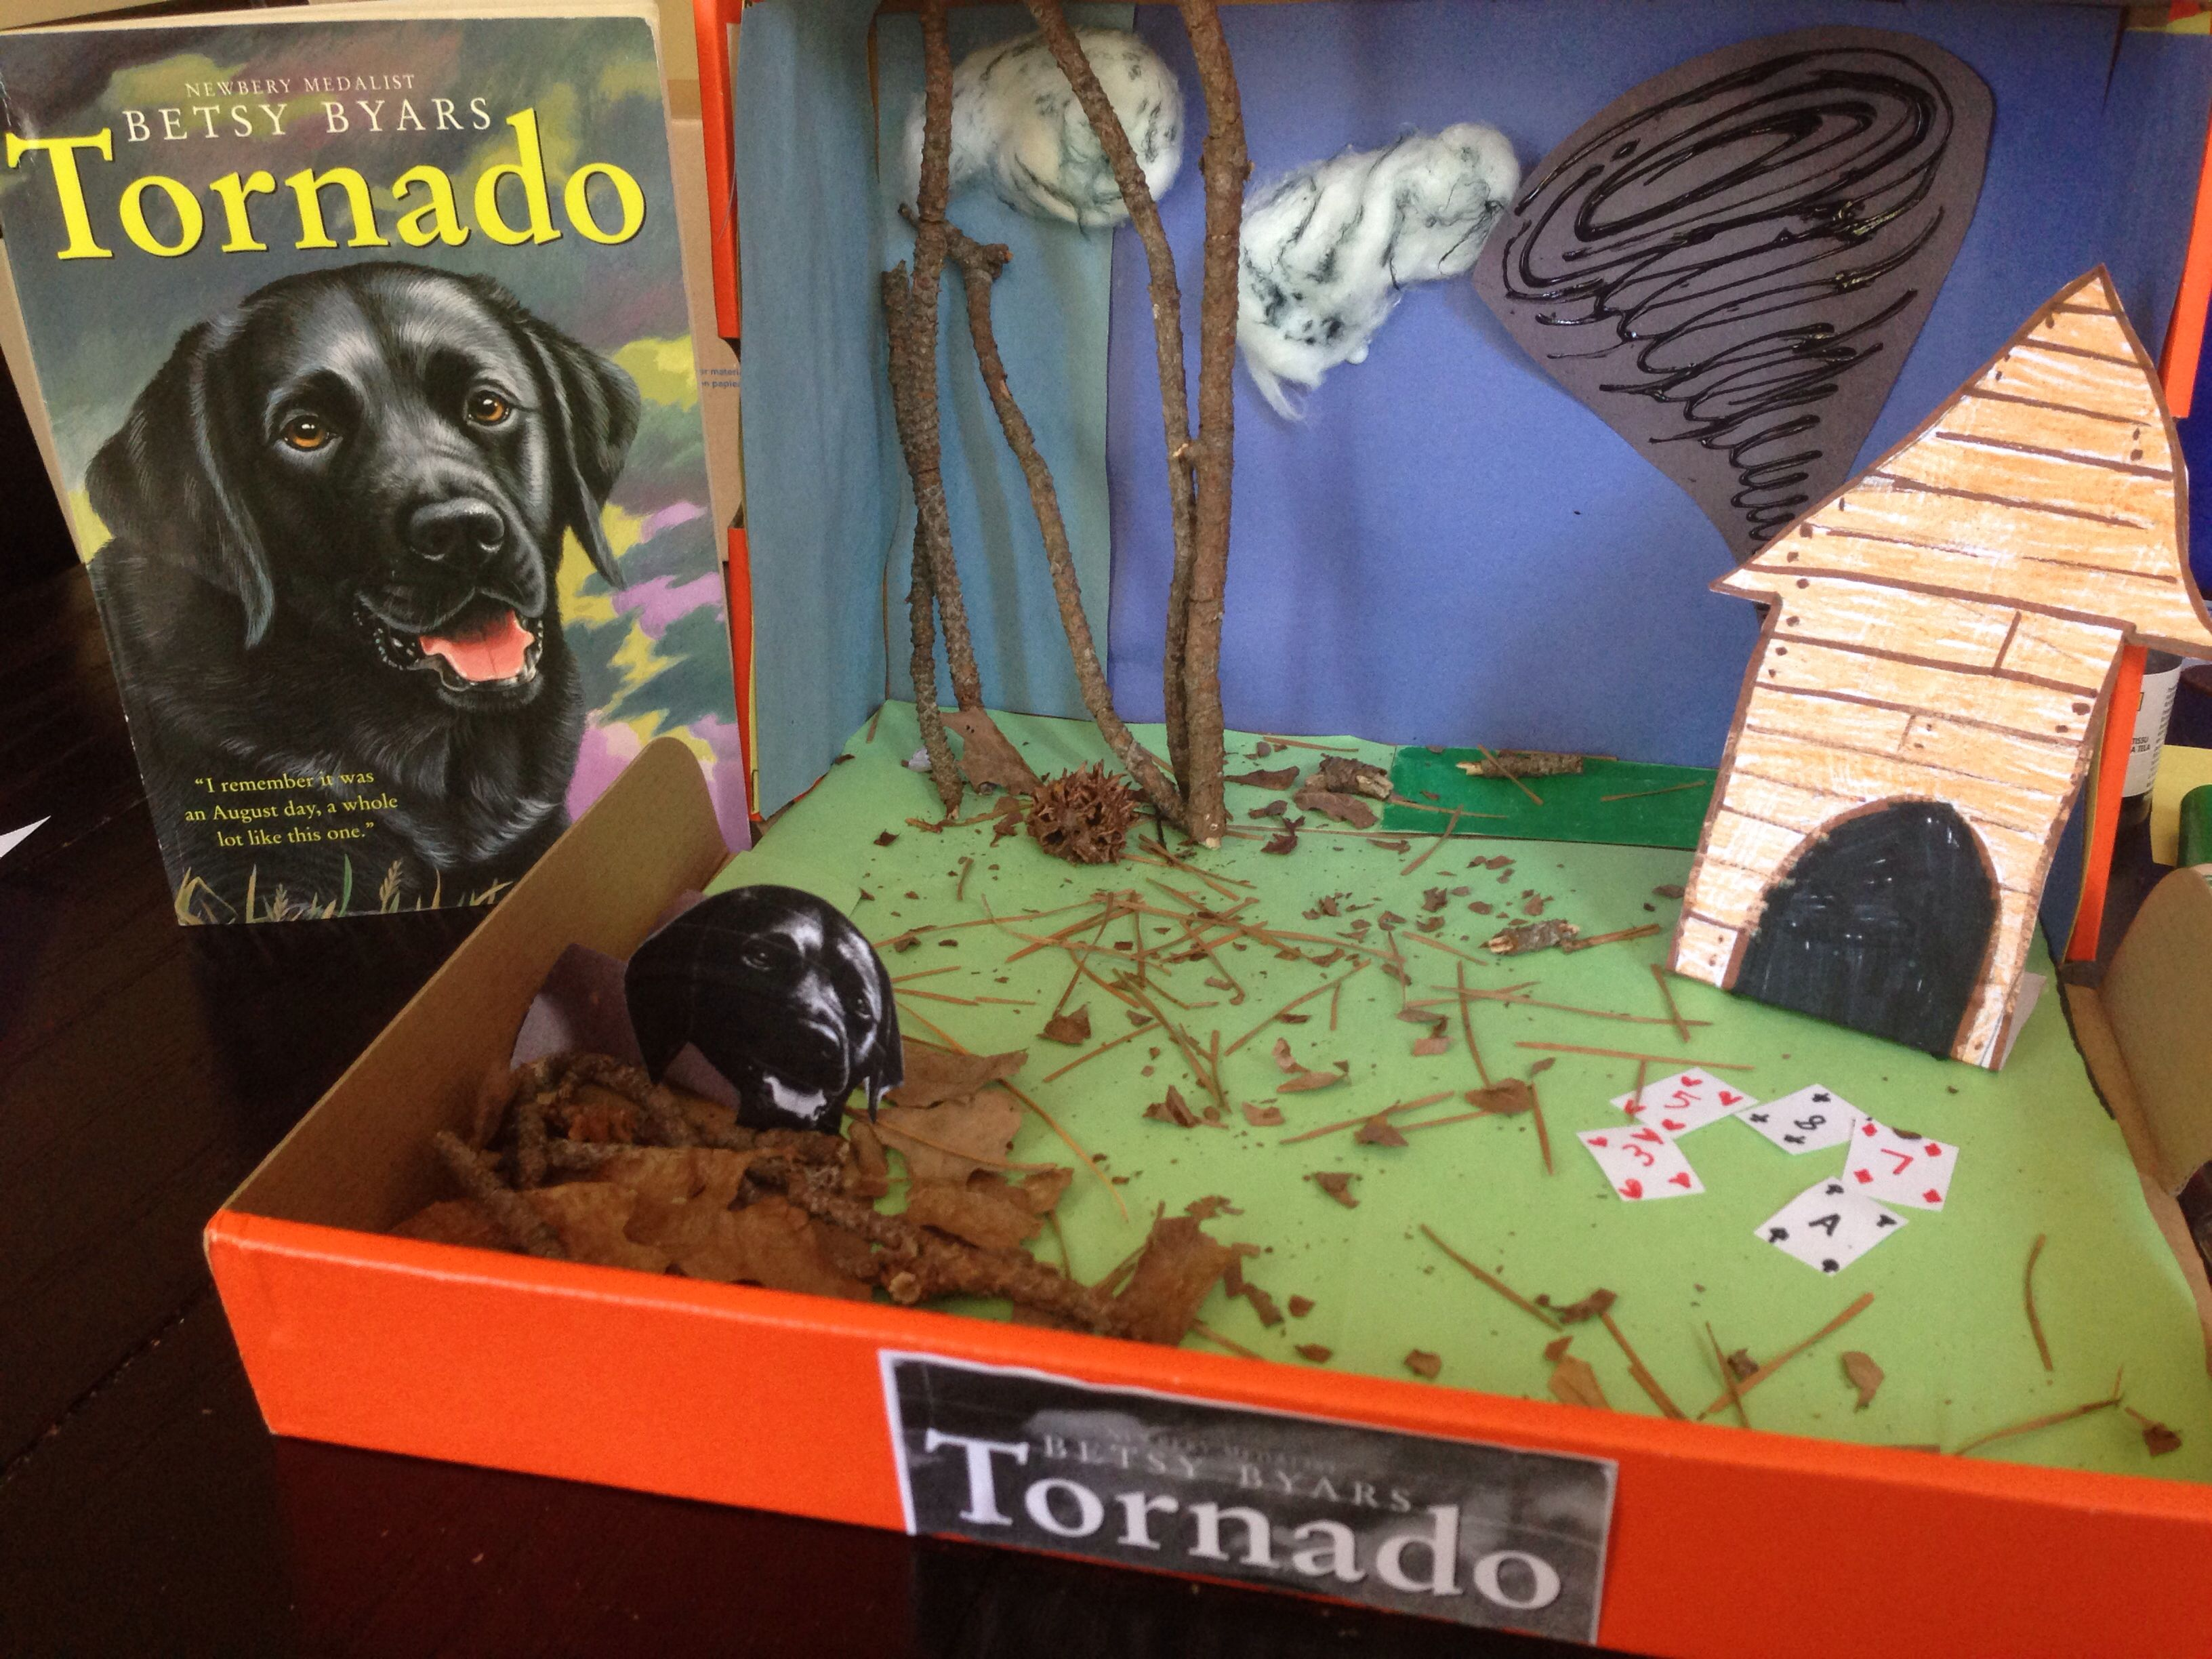 book report diorama instructions Book report: 30 creative ways to  illustrate a scene or character from the book  on a t-shirt • write a short summary of the  of the book • include instructions  about how to play  create a diorama of a scene from the book • create a  scene.